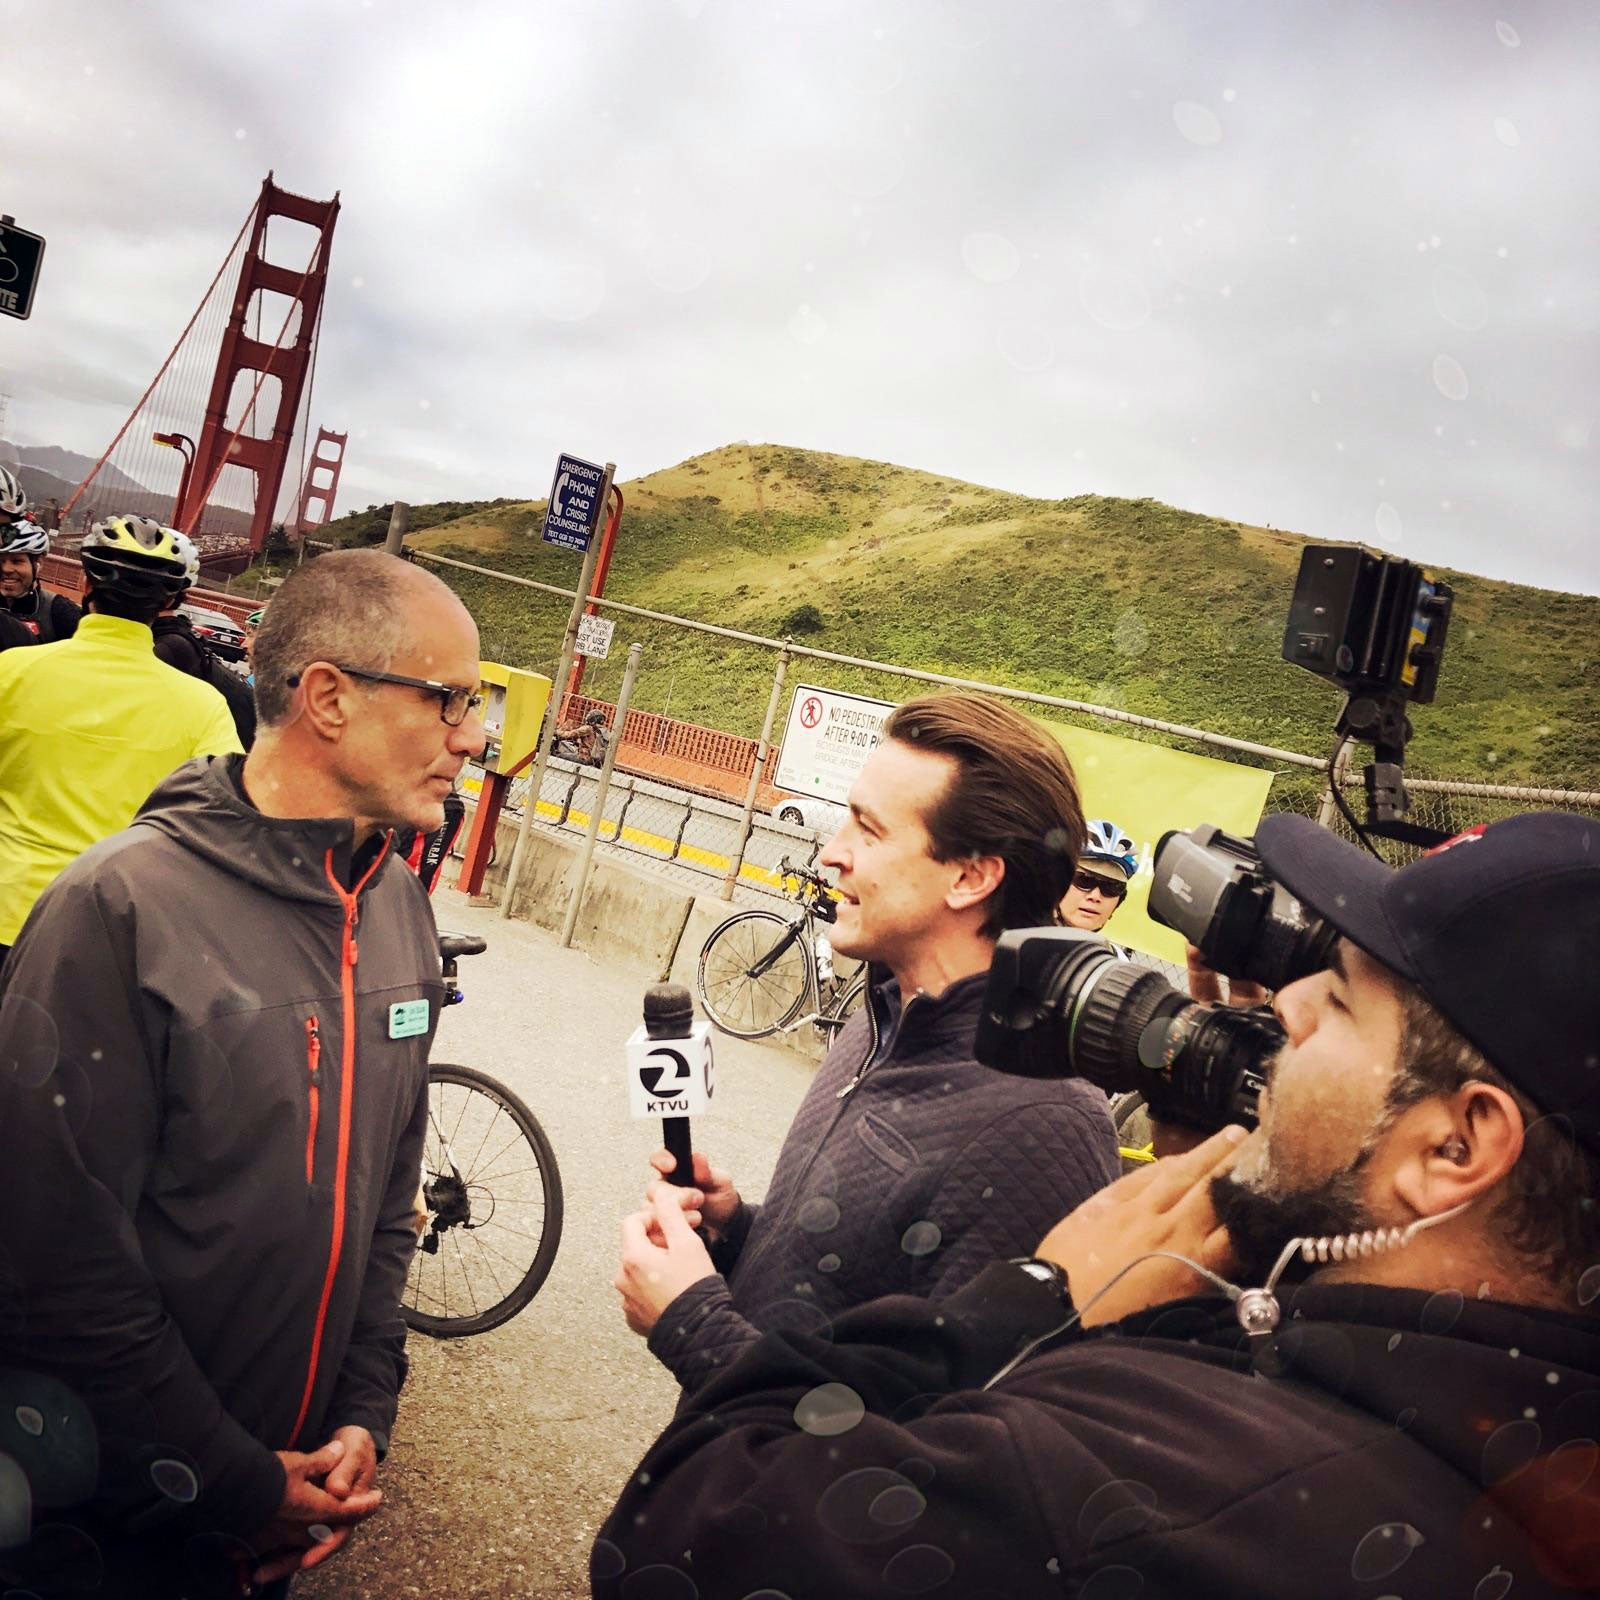 Alex Savidge interviews Jim Elias, Executive director of the Marin County Bicycle Coalition at the Vista Point energizer station.